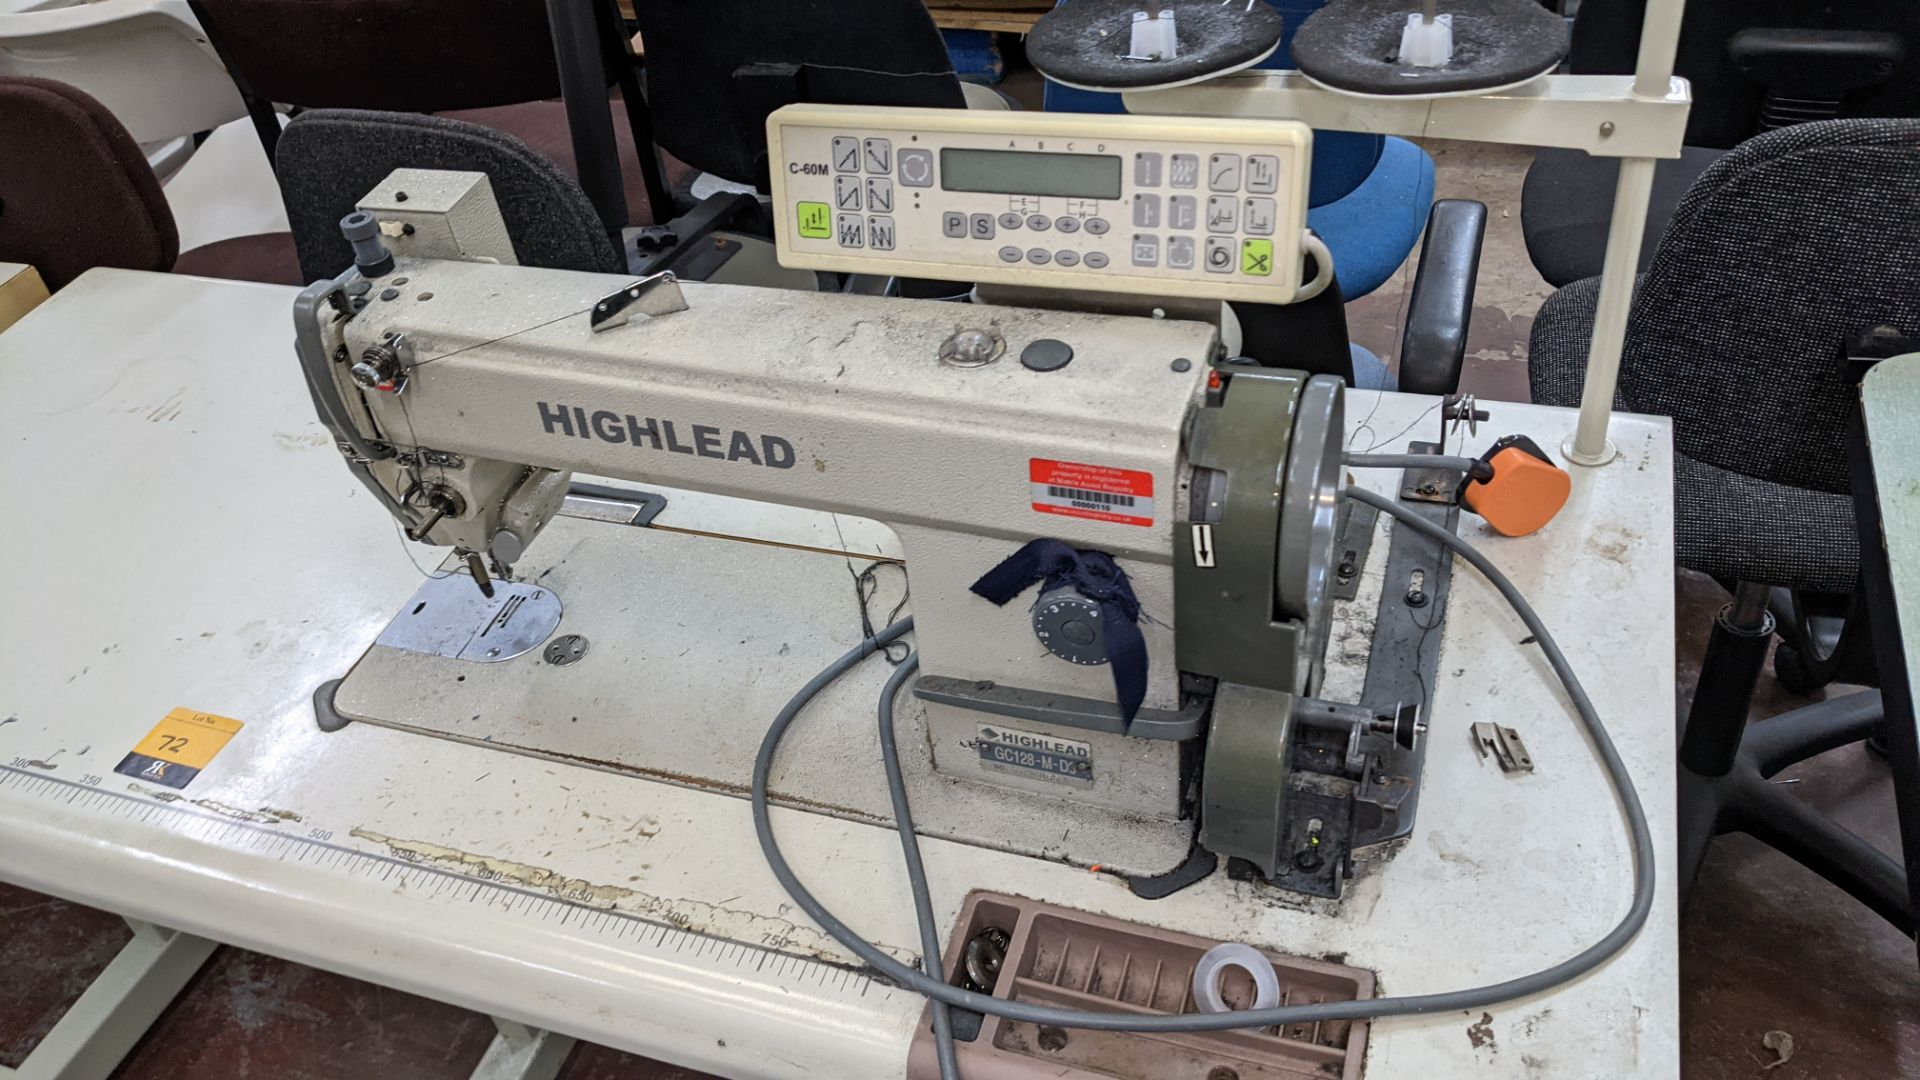 Highlead model GC128-M-D3 sewing machine with model C-60M digital controller - Image 4 of 14